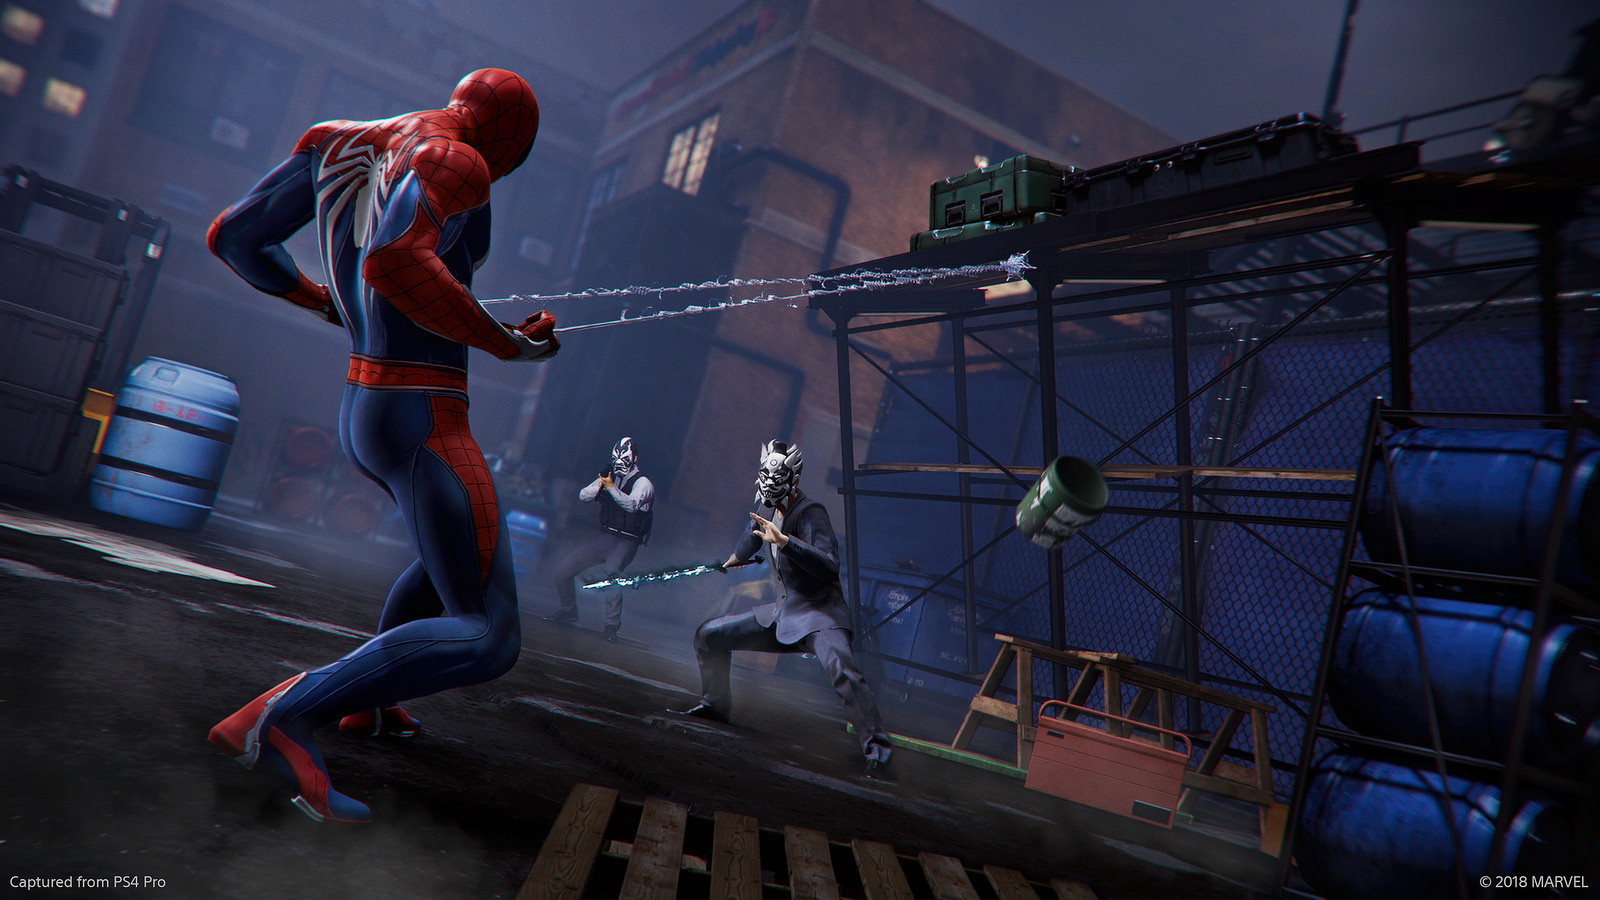 Will Marvel's Spider-Man release on Xbox One?